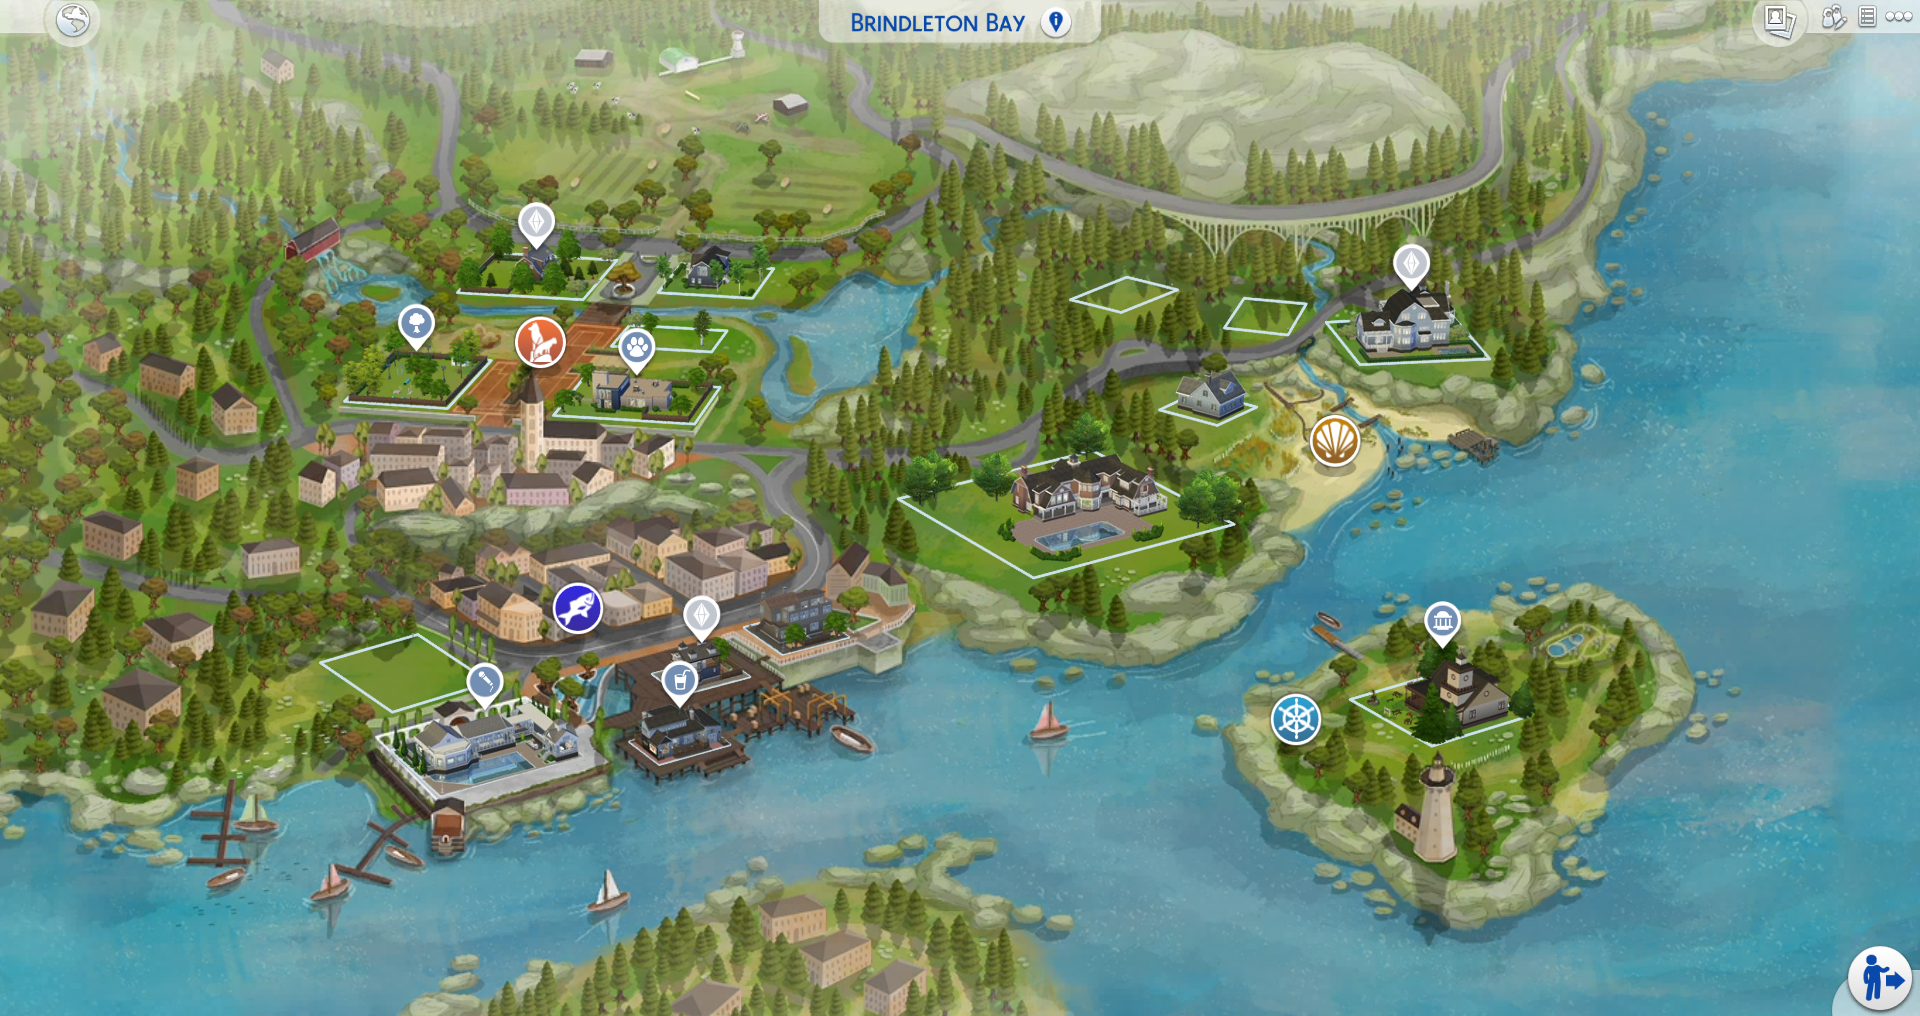 The Sims 4: World Map Replacements for ALL Worlds Now